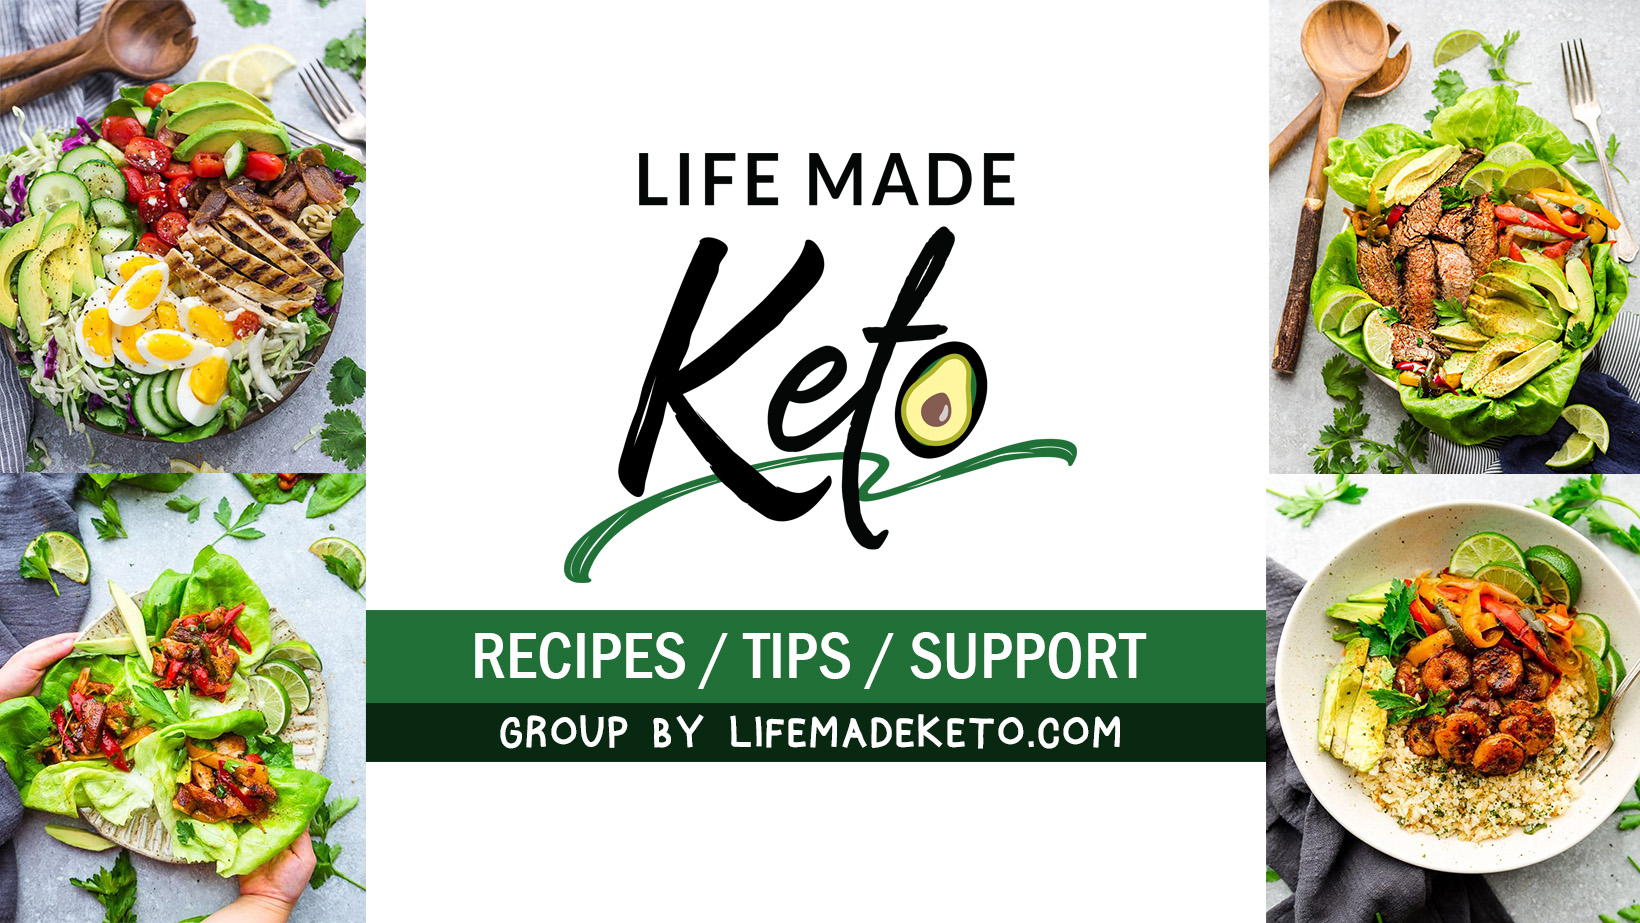 Join our Facebook community for support, tips & recipes